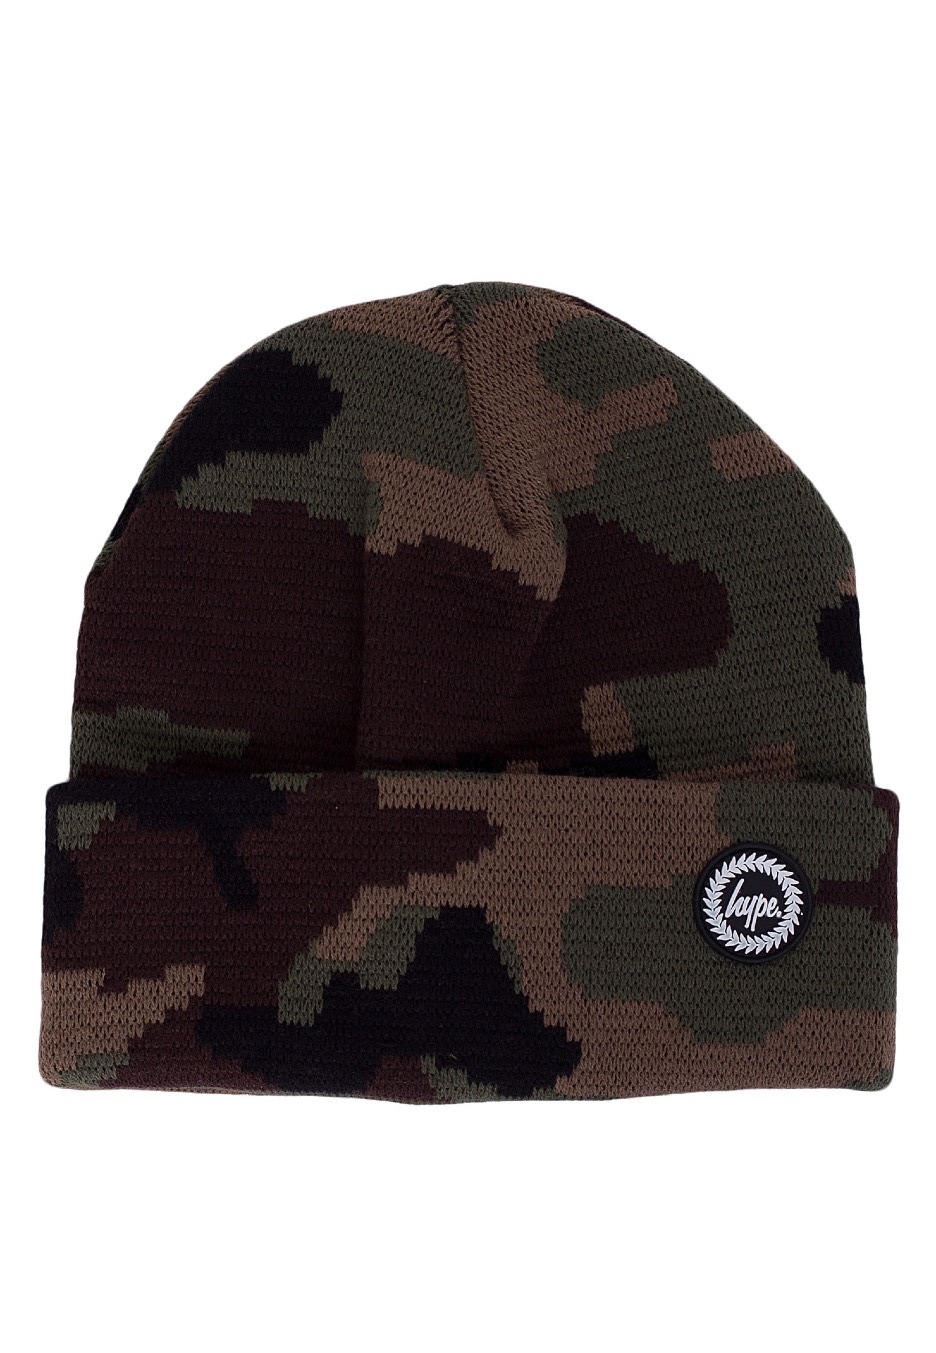 3fb3cf753bc HYPE. - Forest Camo Multi - Beanie - Streetwear Shop - Impericon.com UK